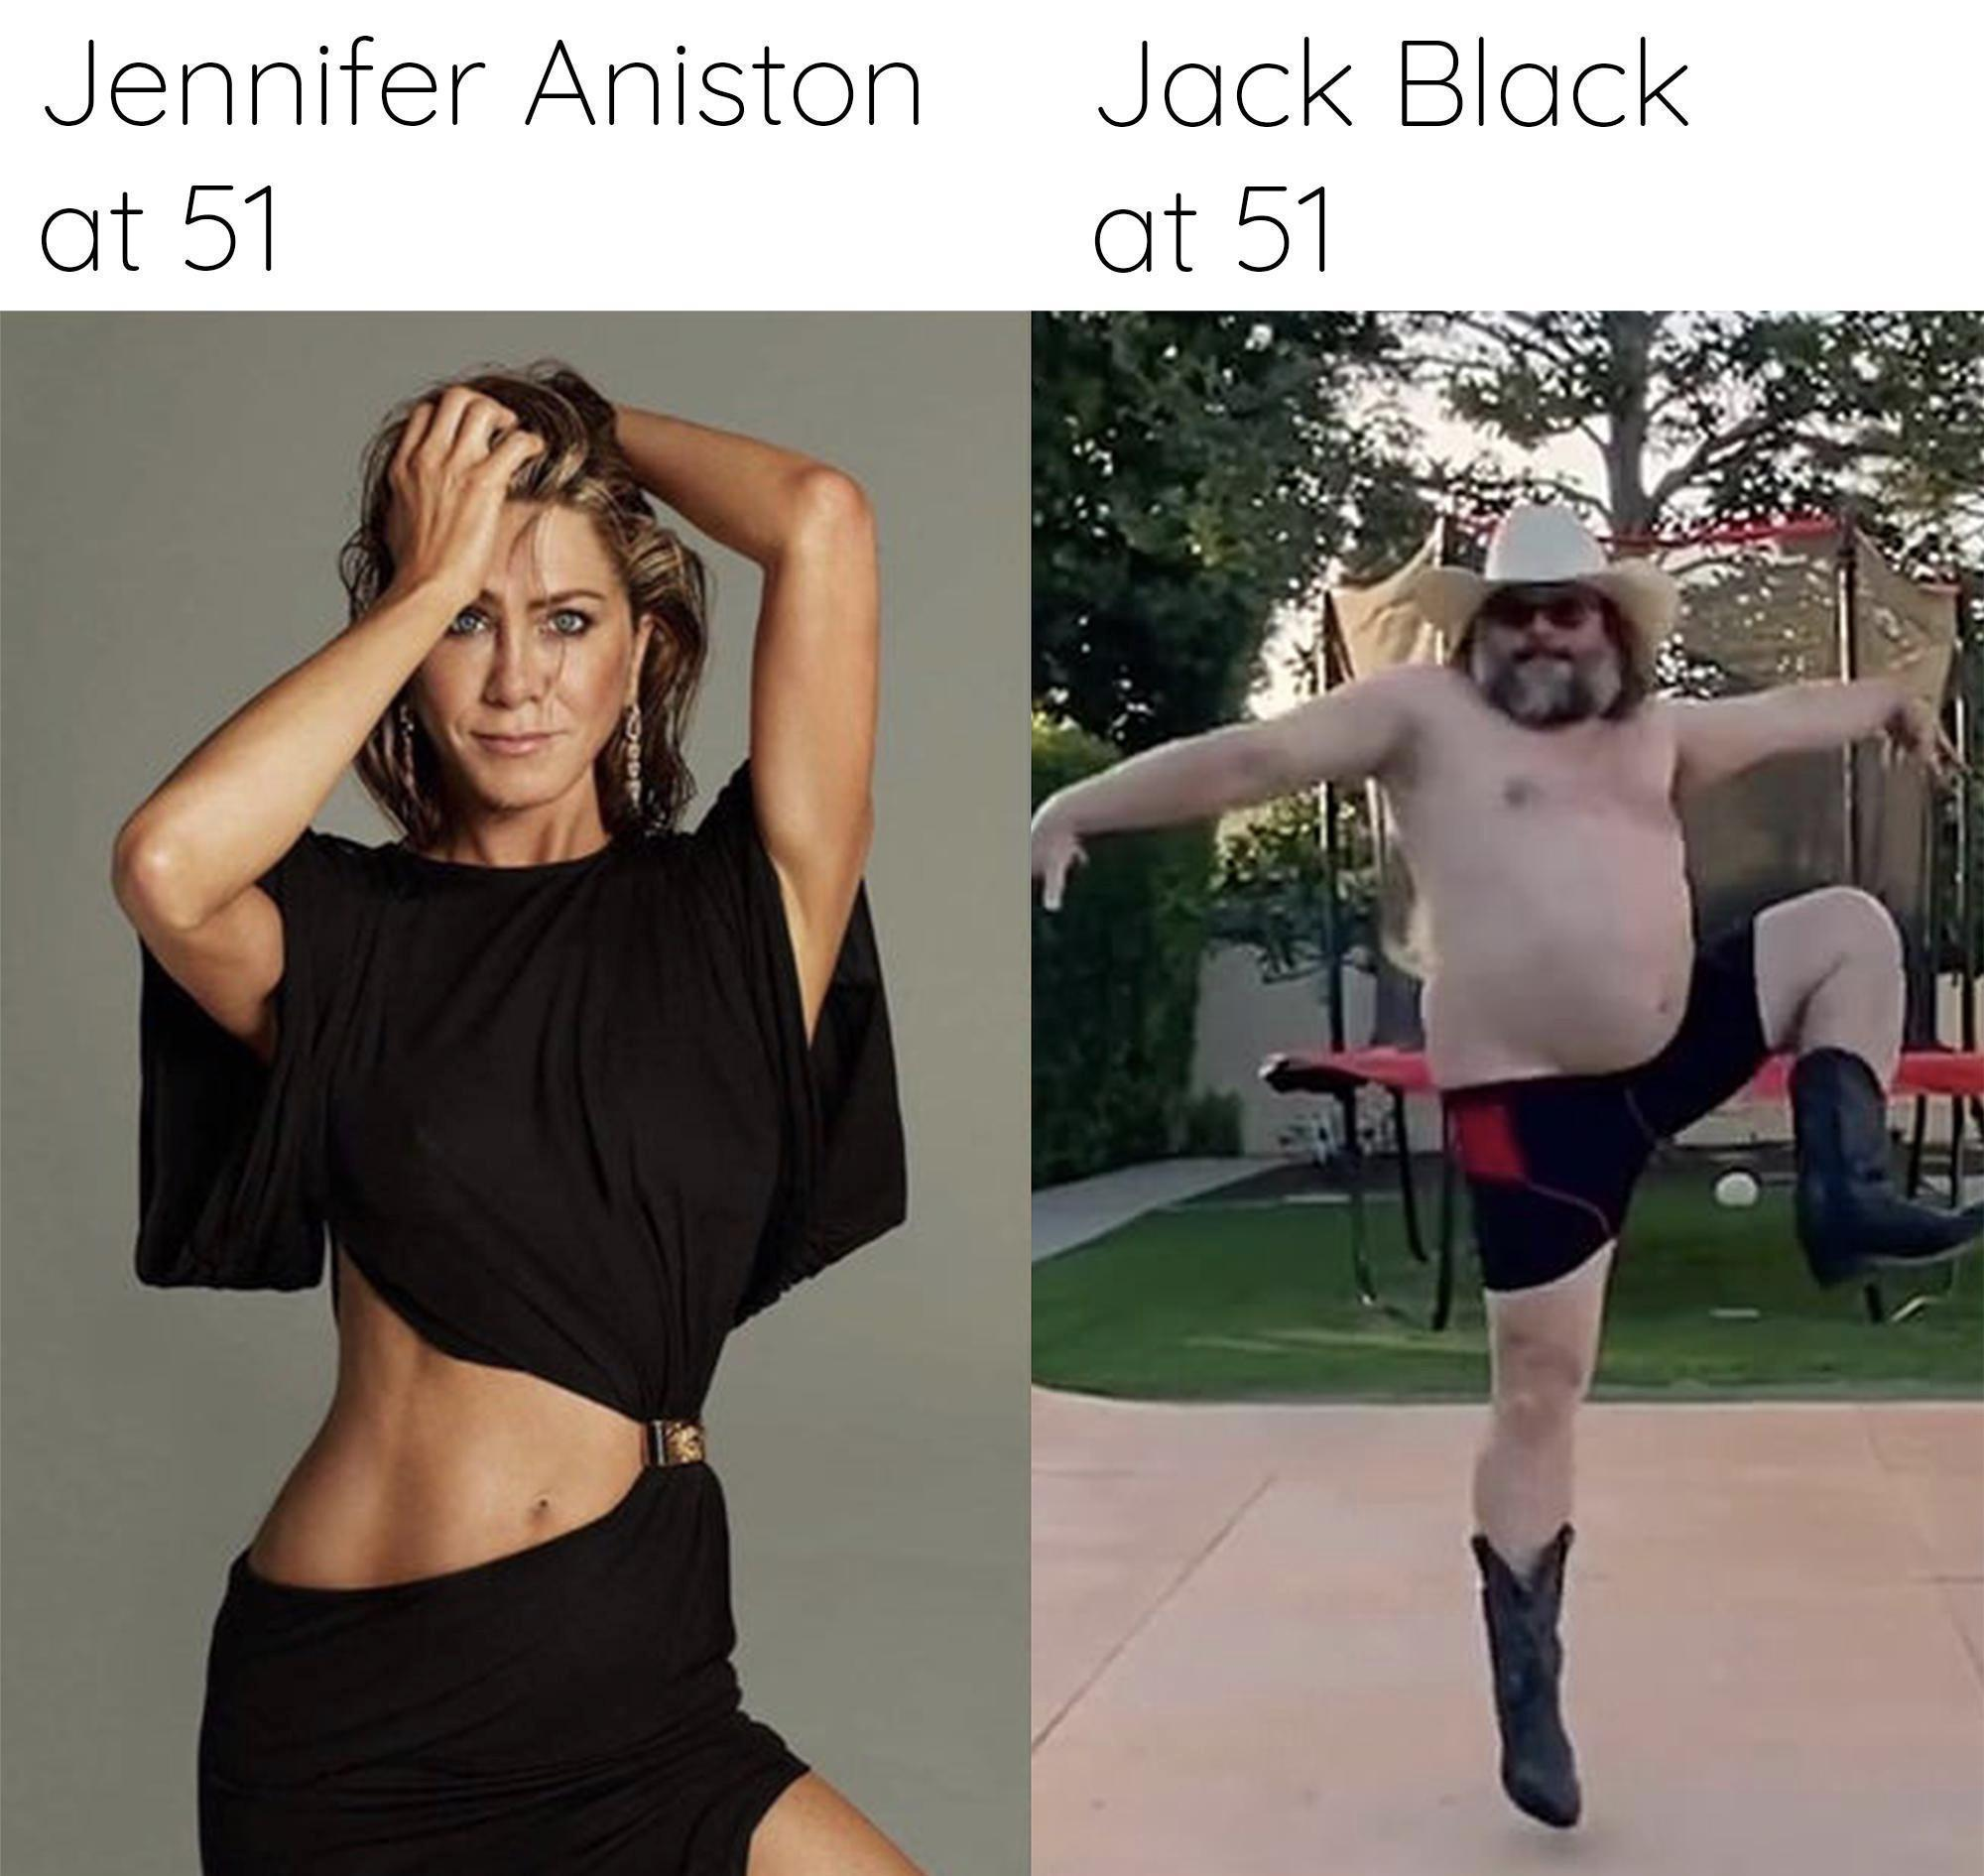 One of these images gives me a boner - meme